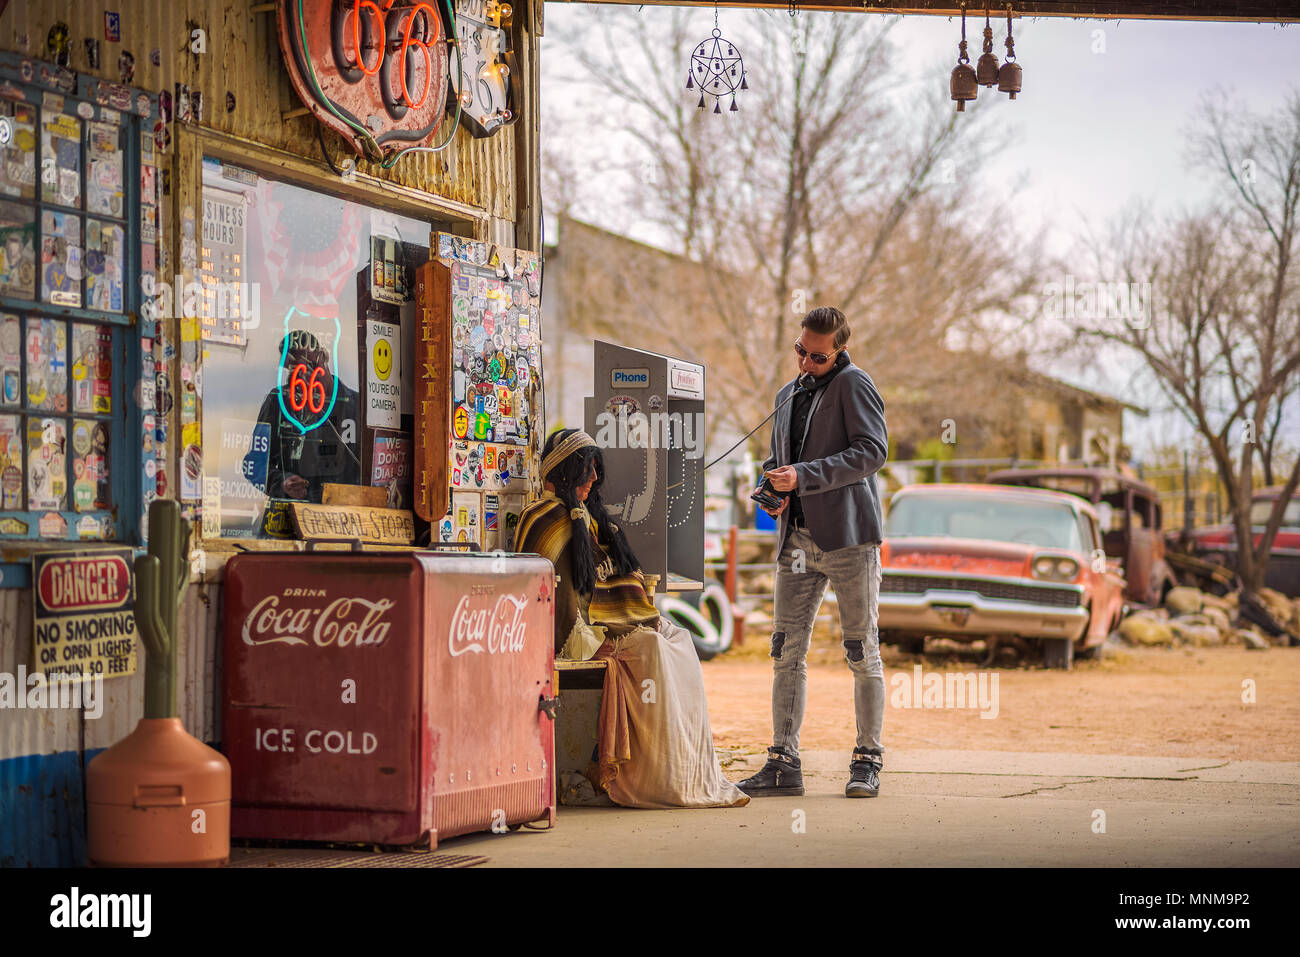 Young man uses a vintage telephone at a retro gas station - Stock Image